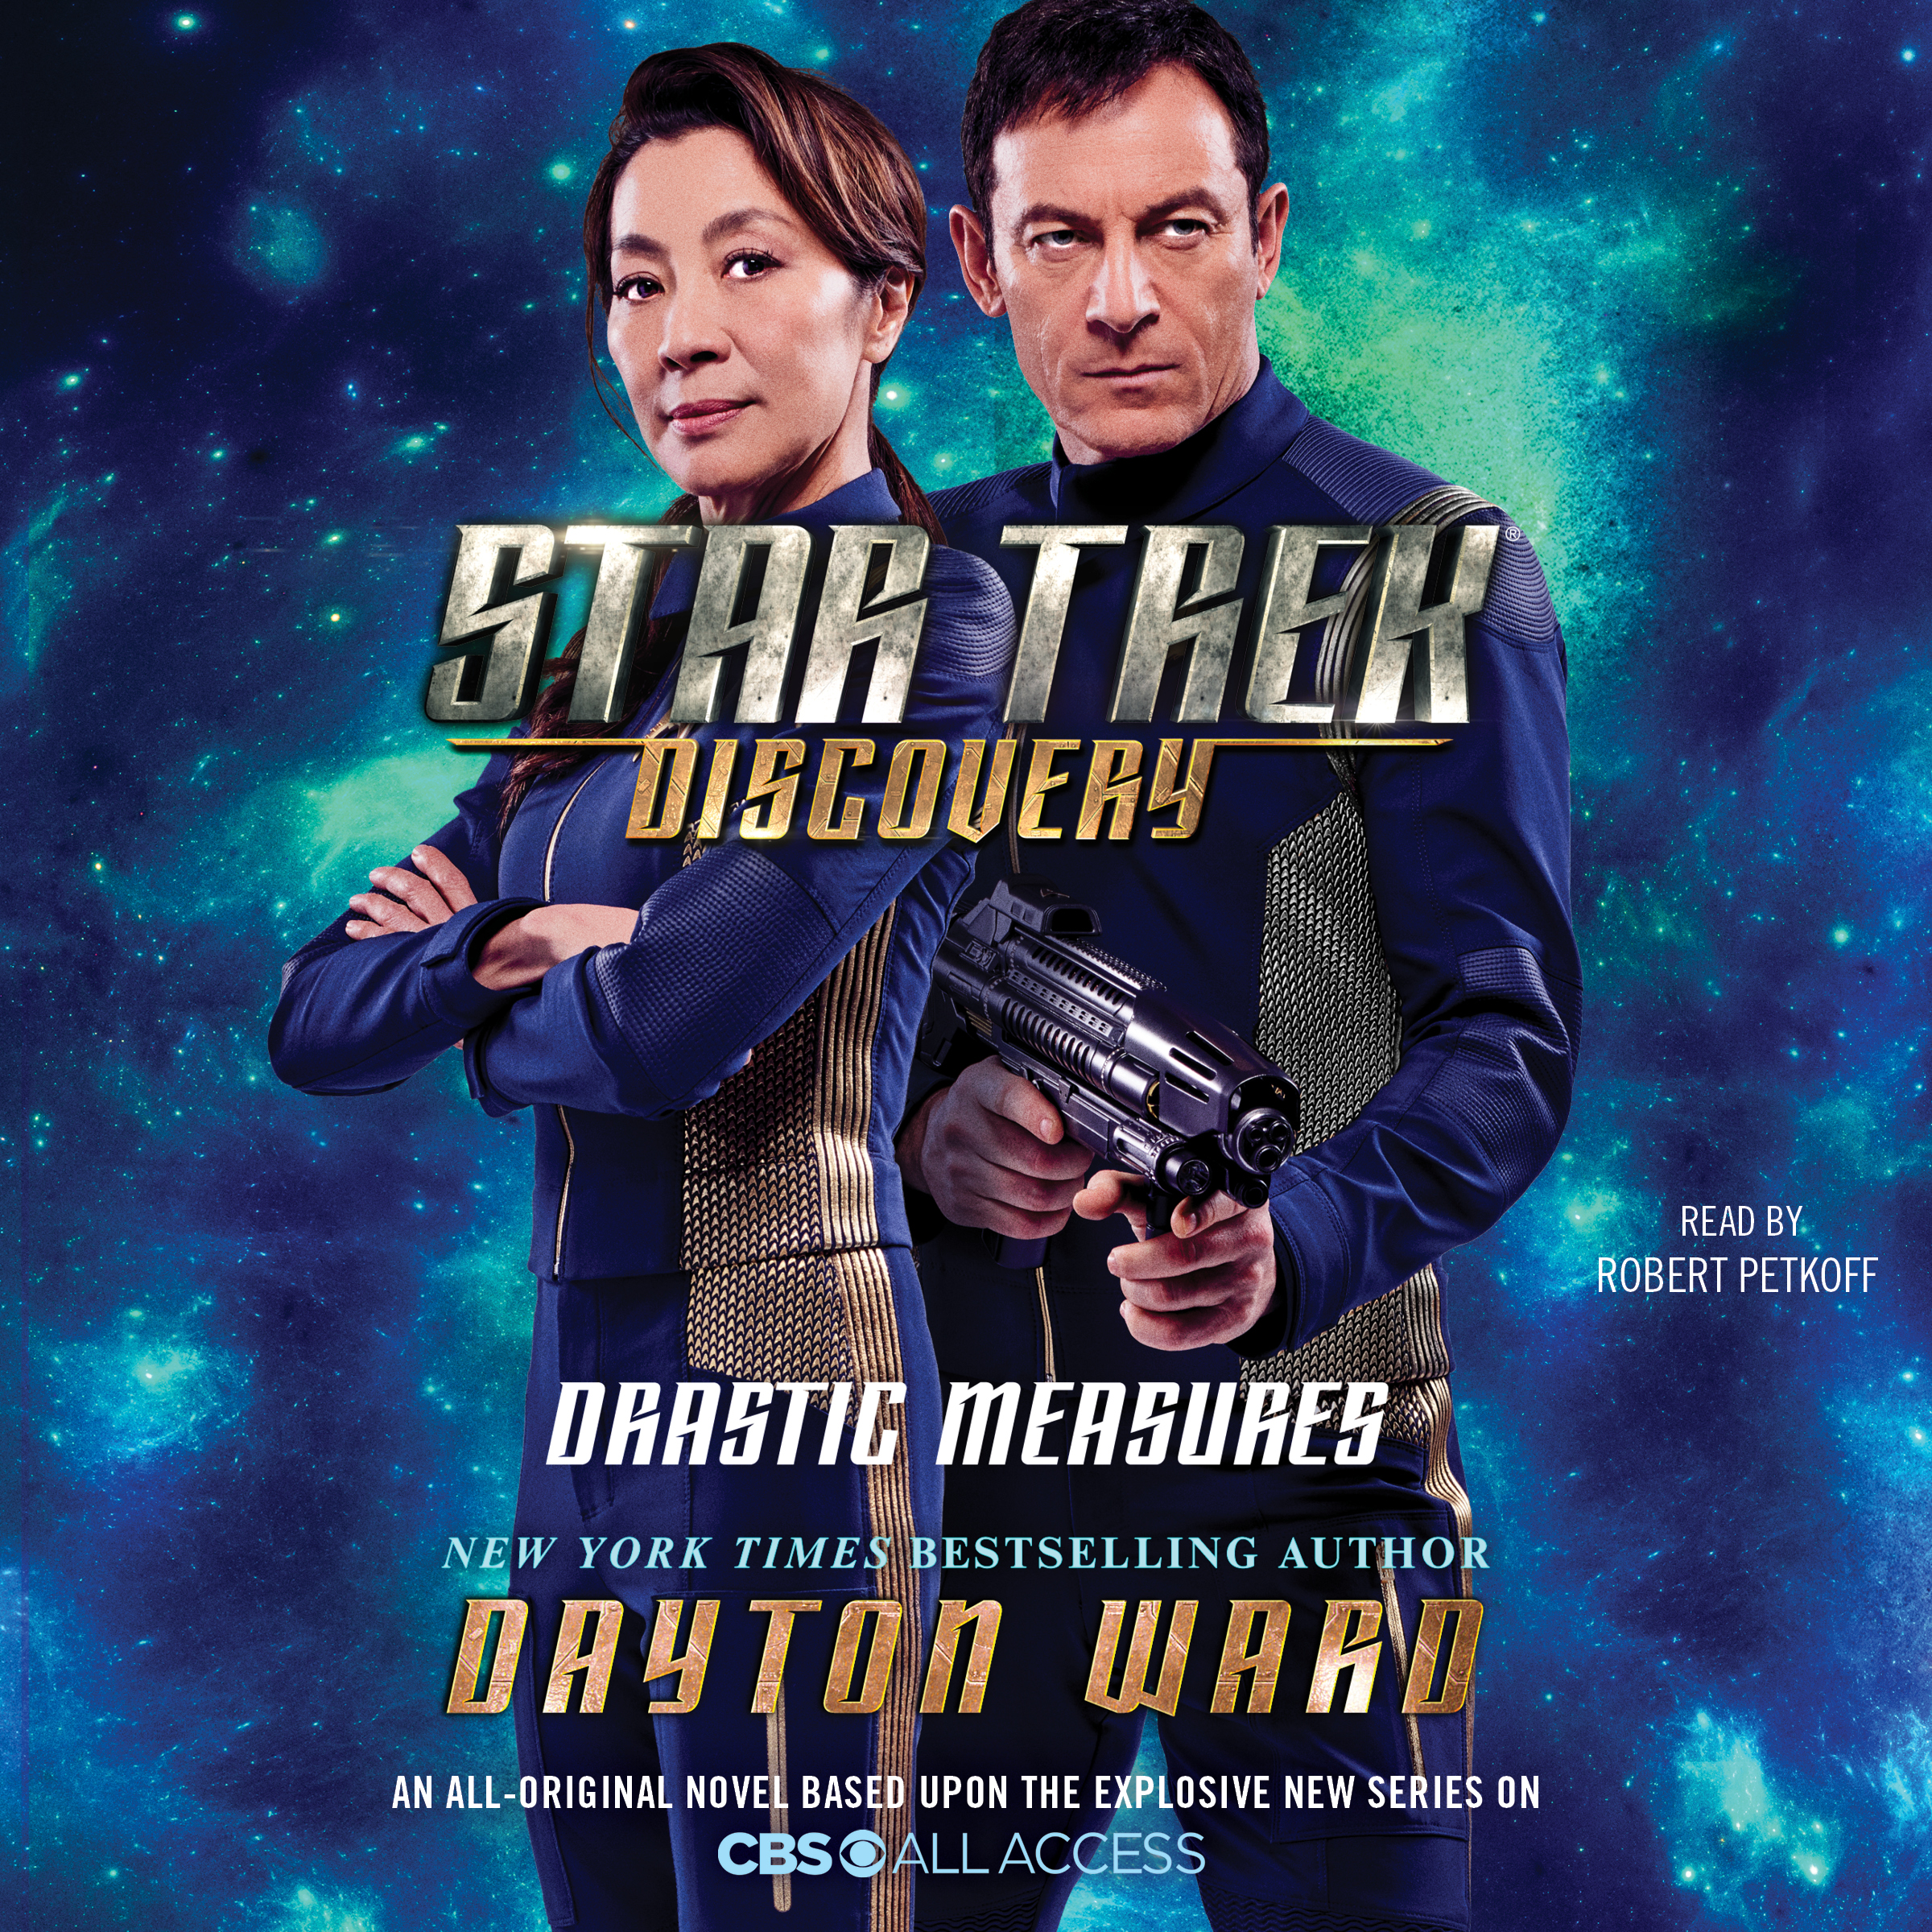 Star trek discovery drastic measures 9781508253037 hr